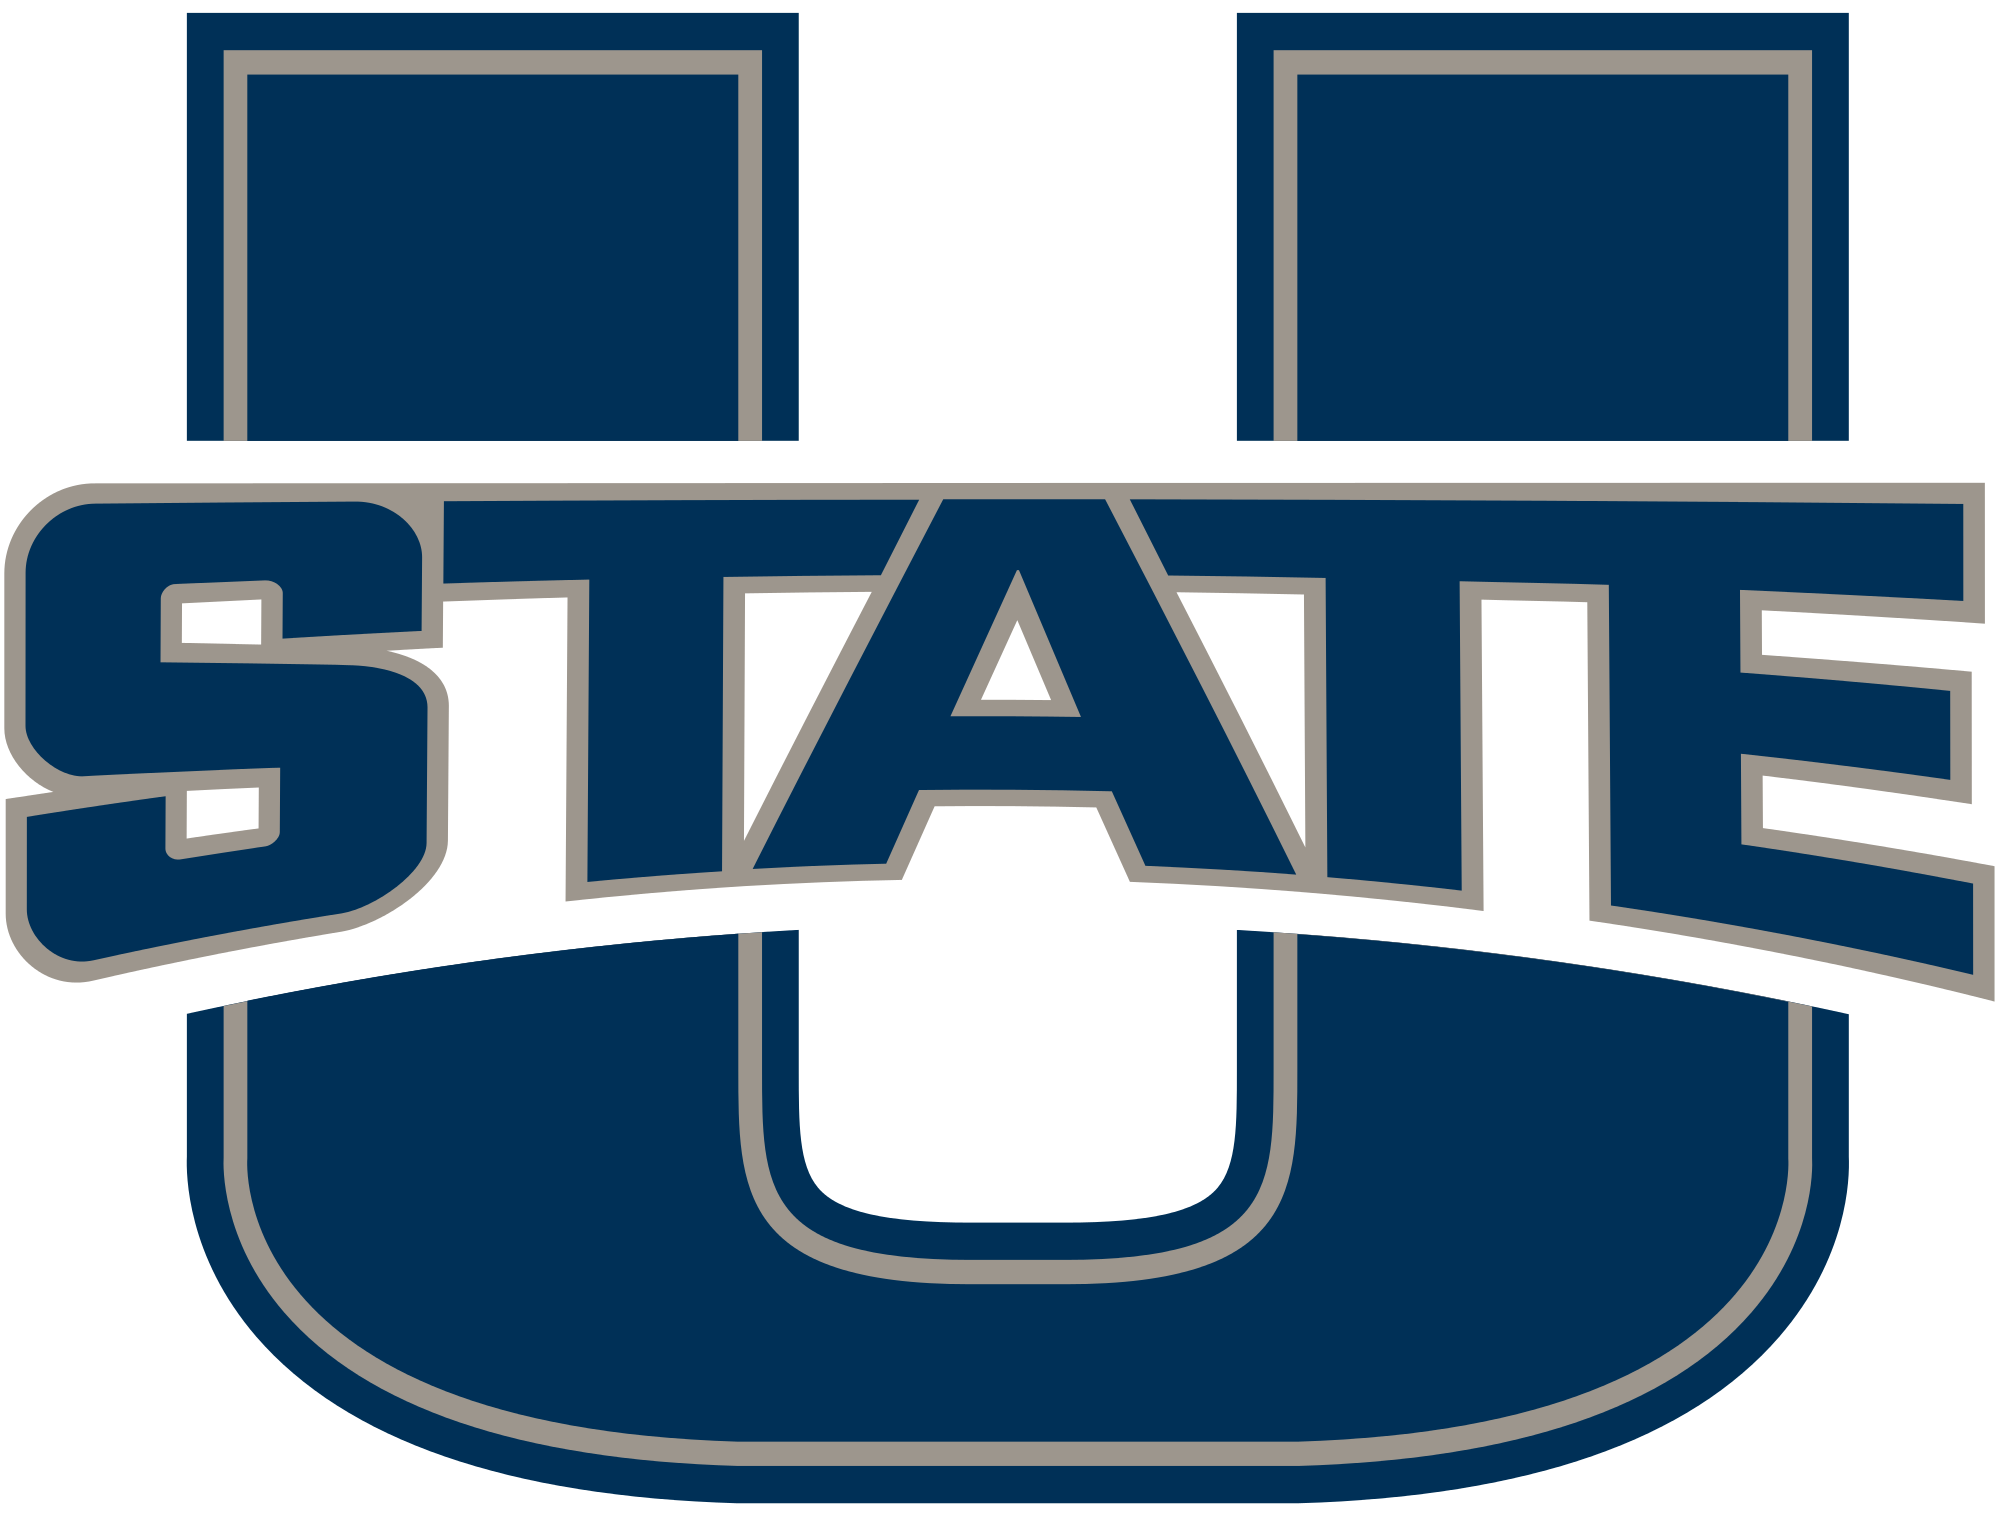 utah st football images - Google Search | college football ... royalty free stock